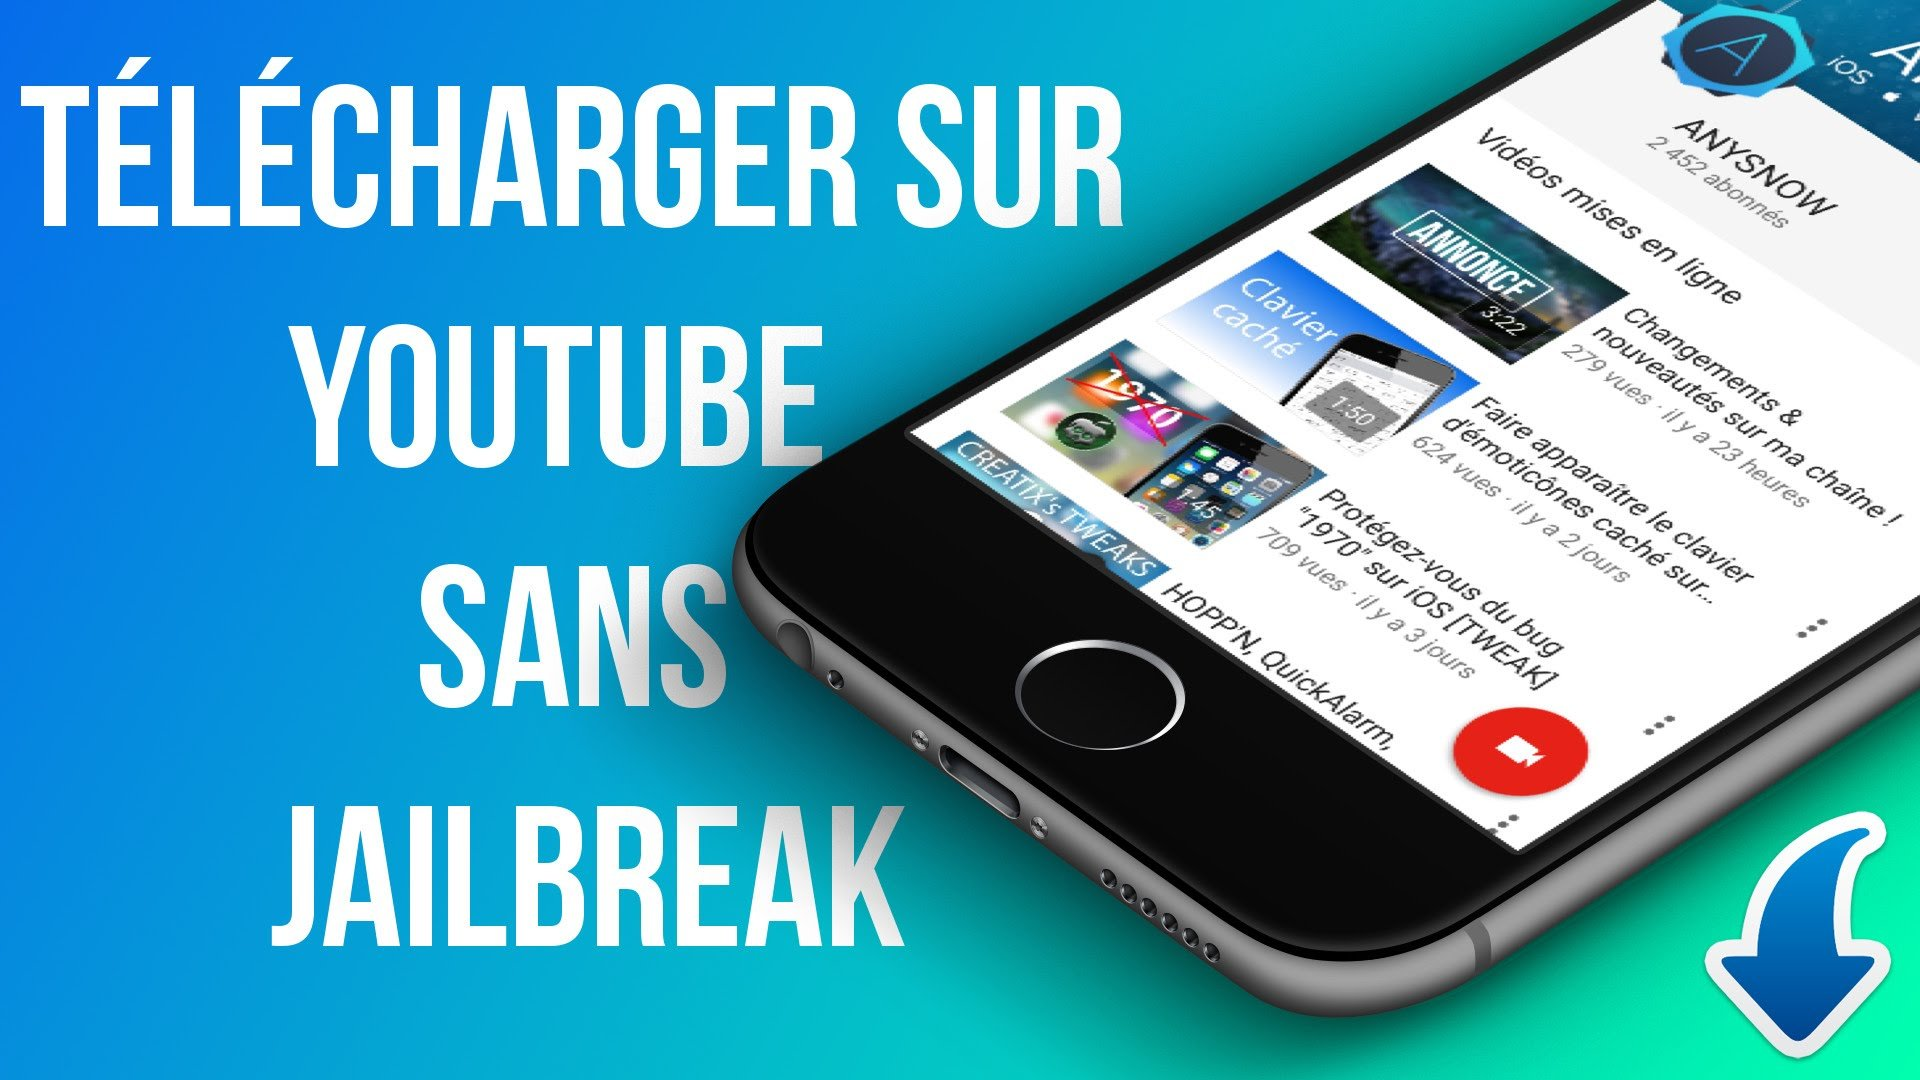 telecharger-videos-youtube-iphone-sans-jailbreak